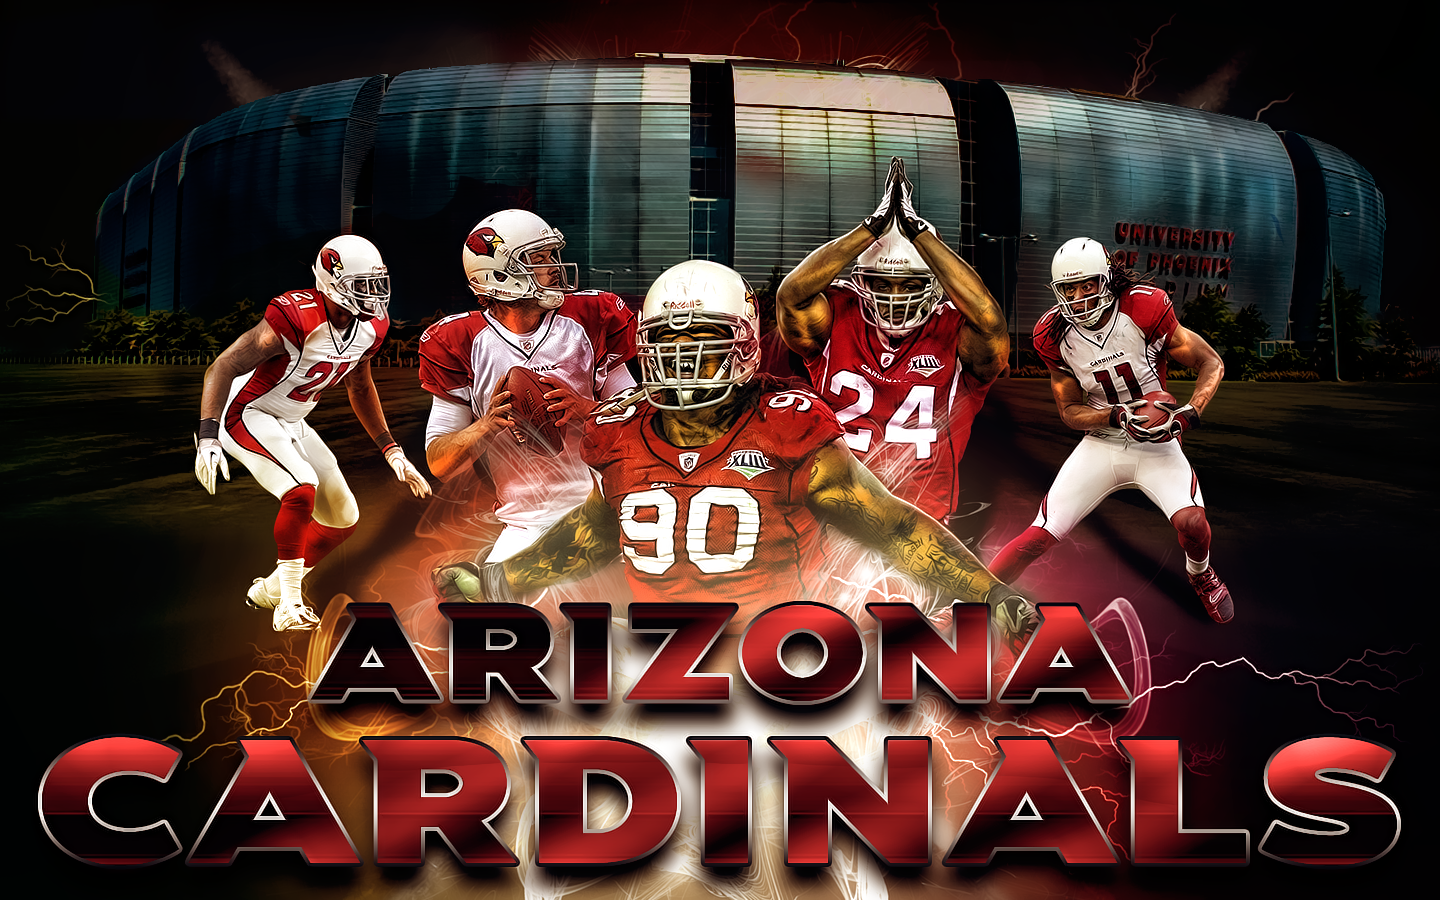 Watch ARIZONA CARDINALS NFL Football Live Online